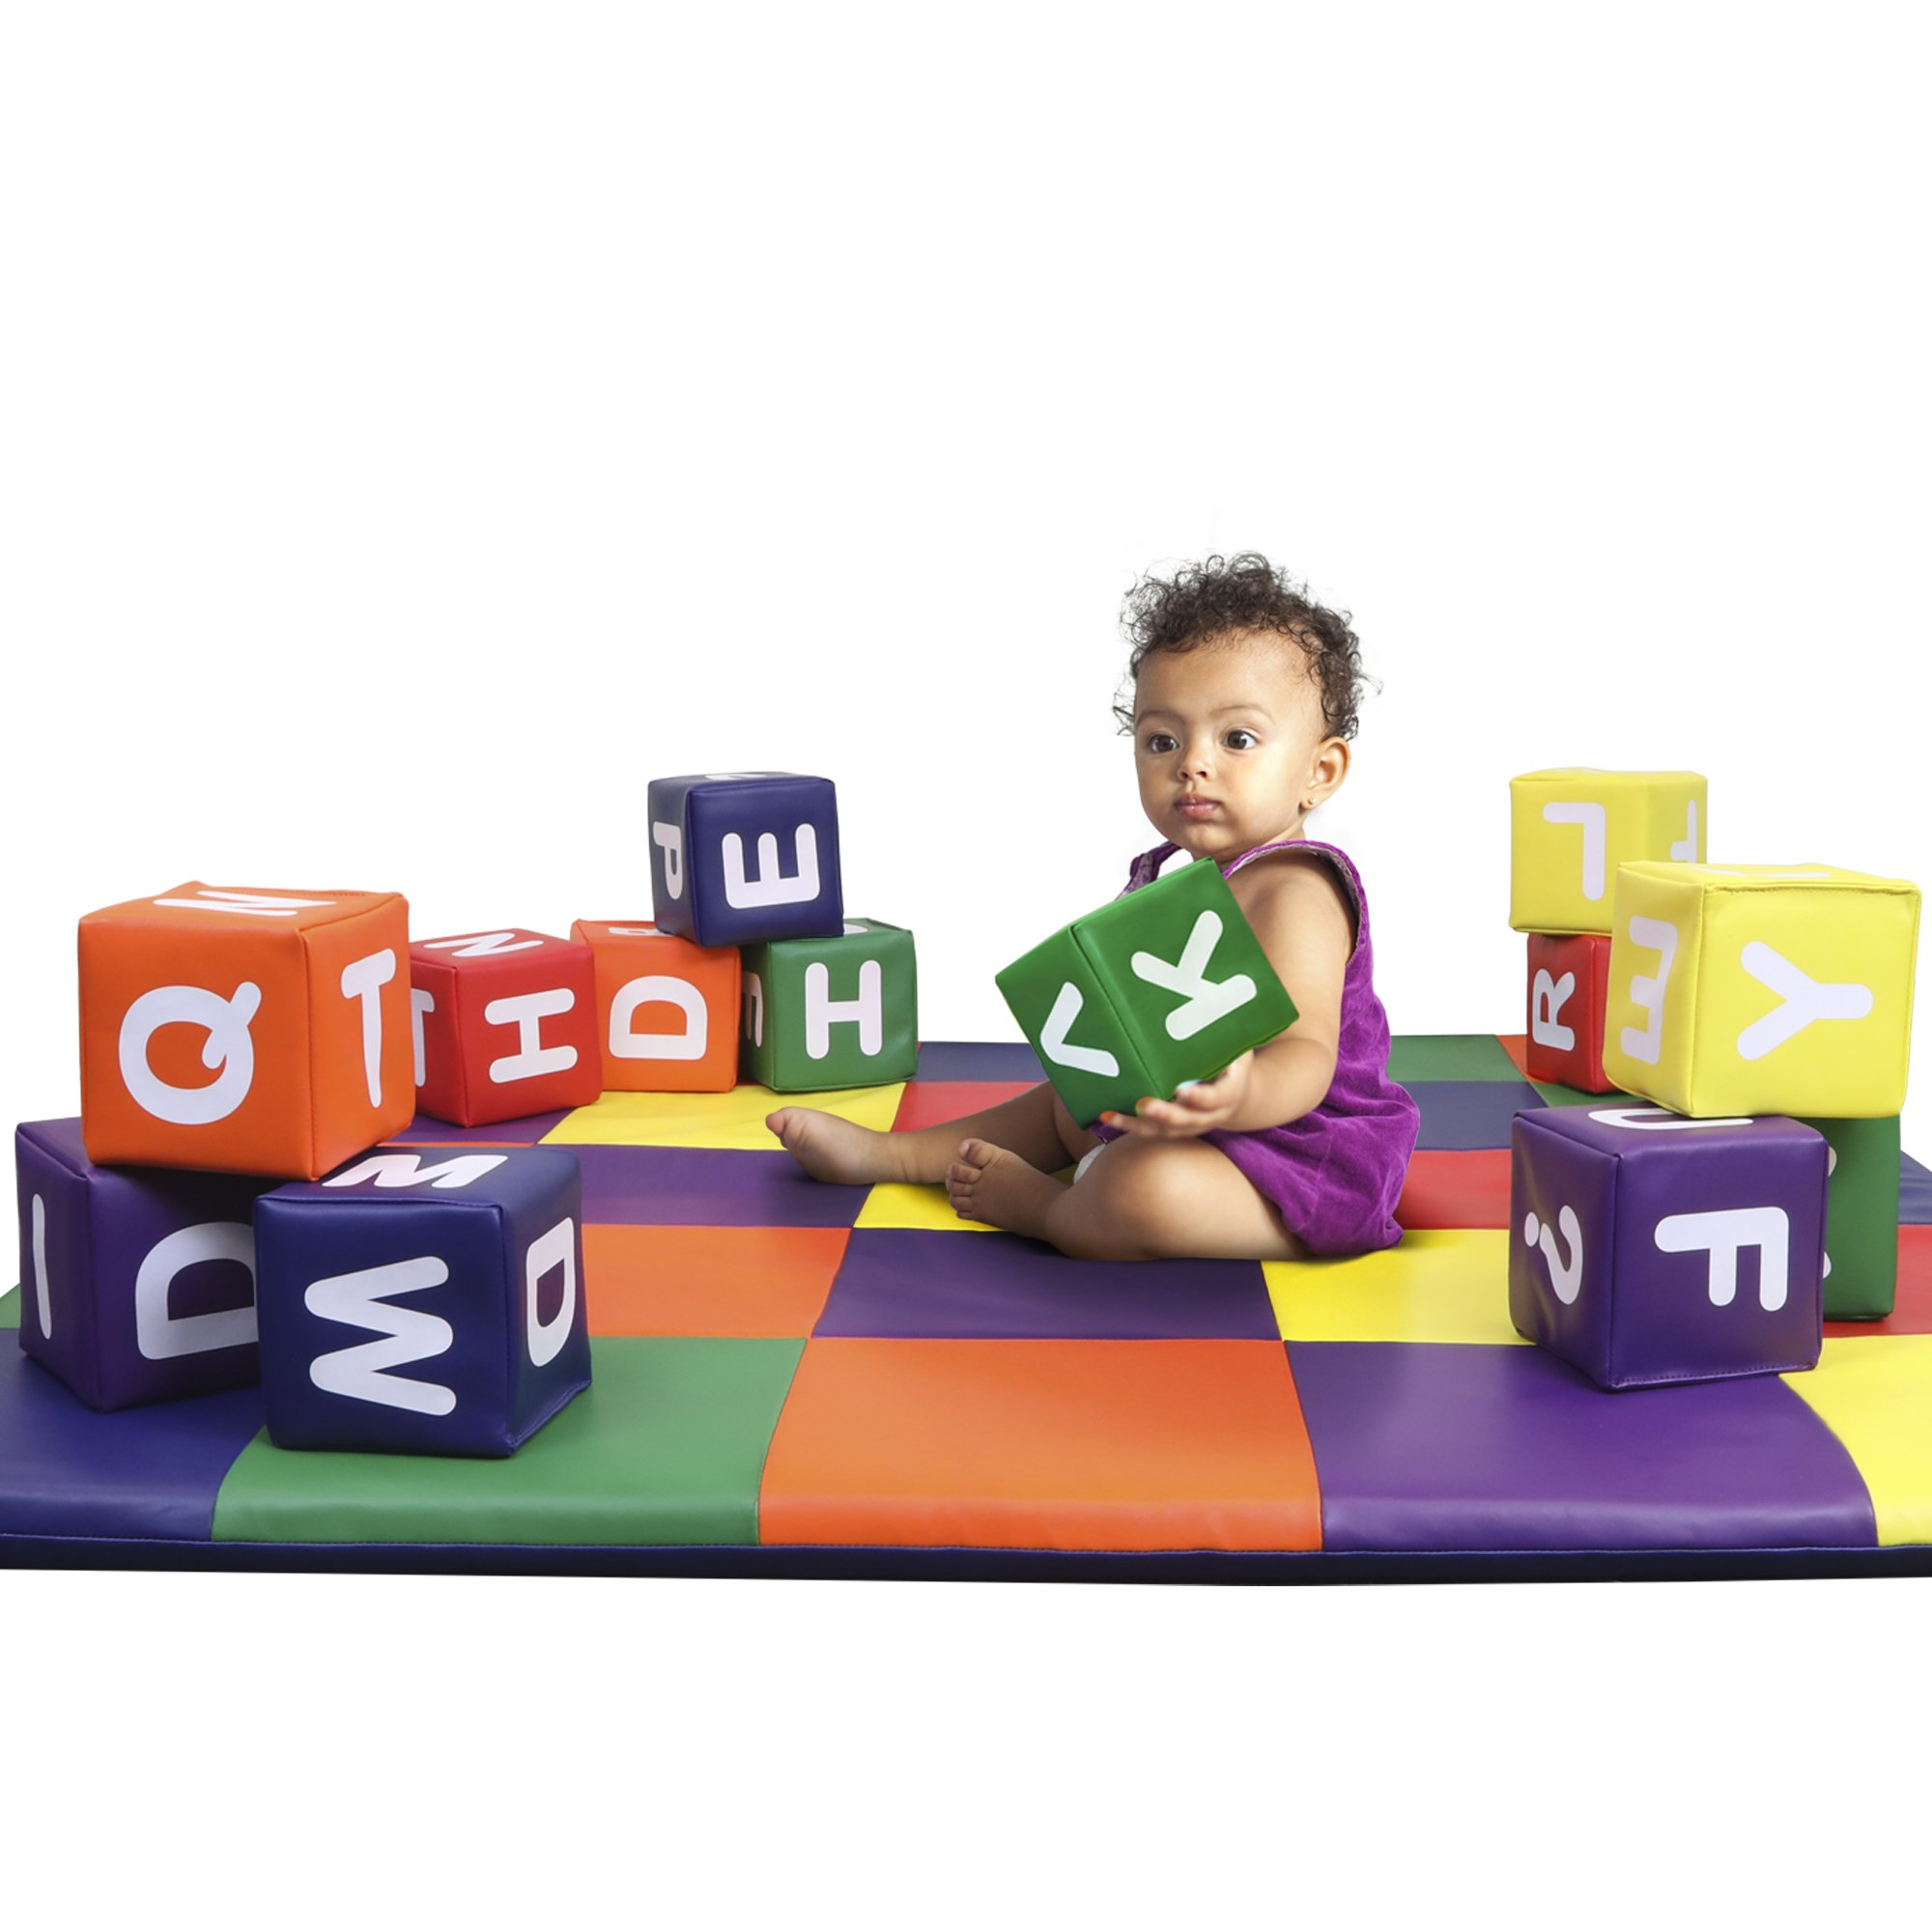 Dream Tree Building Blocks with Alphabet [Set of 12] Washable, Non-Toxic CPSIA Compliant Learning Toys Soft Foam Blocks for Toddler, Baby, Kids, and Preschool